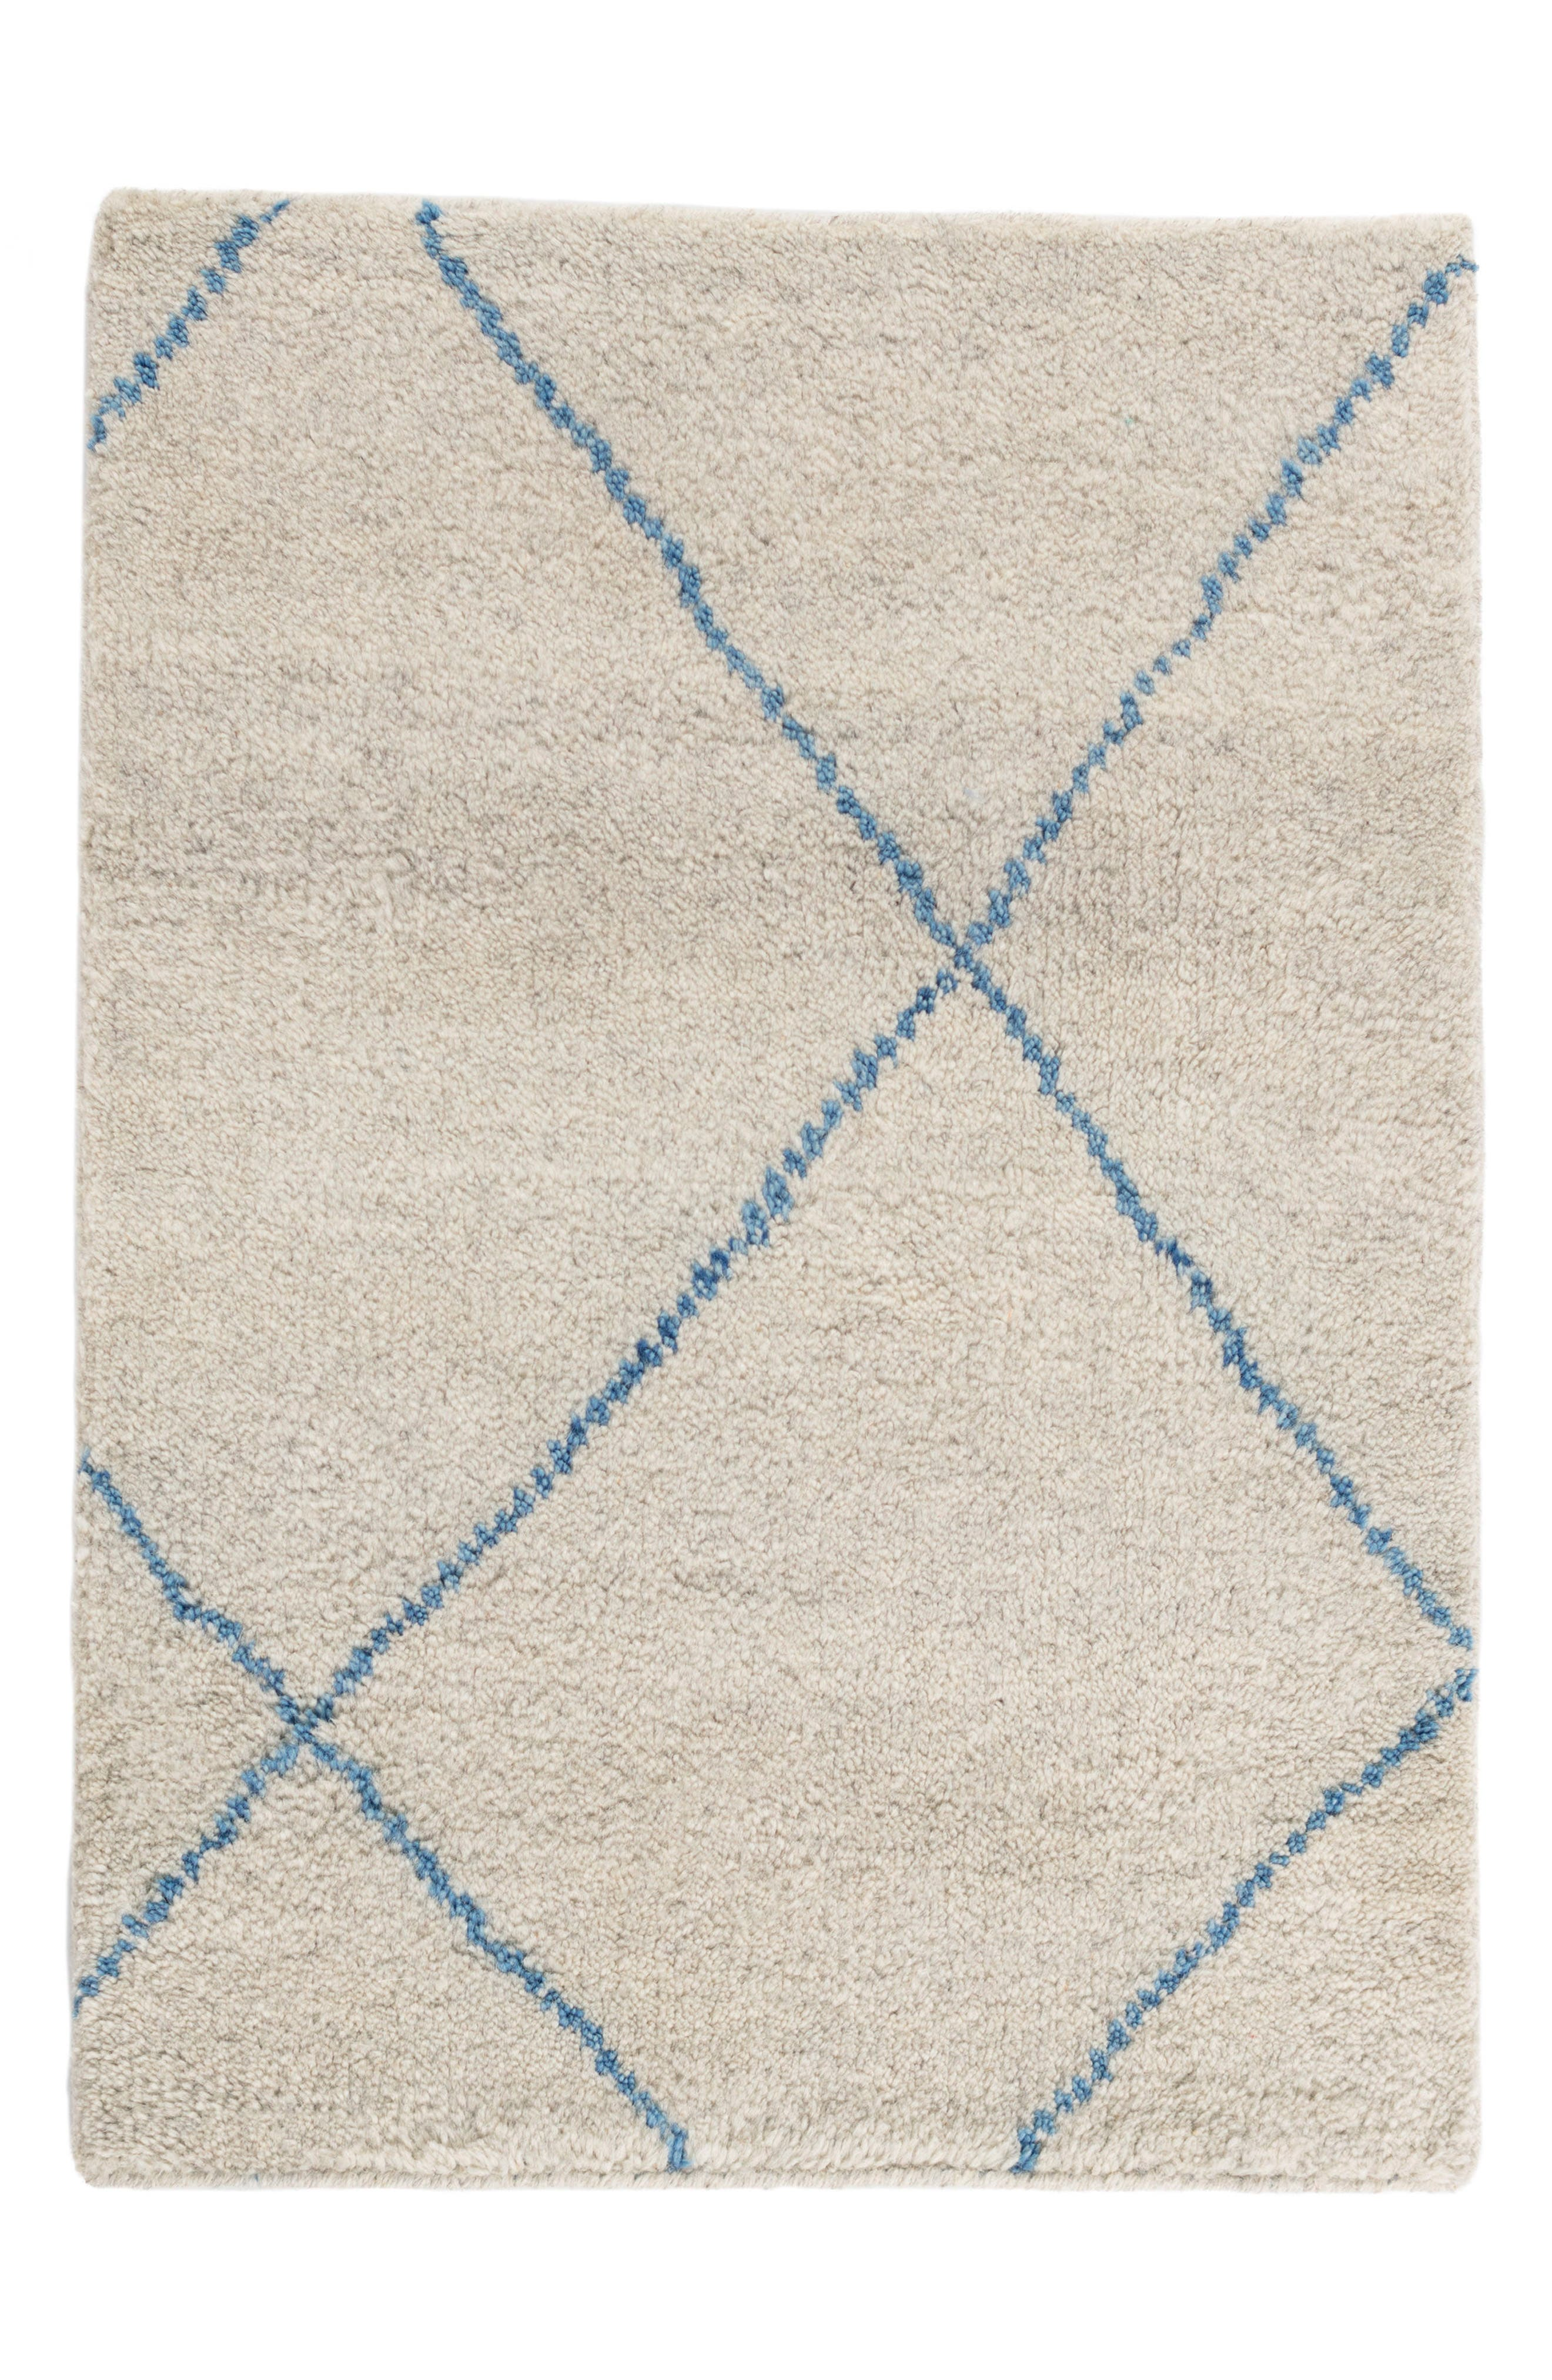 Numa Hand Knotted Wool-Blend Rug,                             Main thumbnail 1, color,                             400